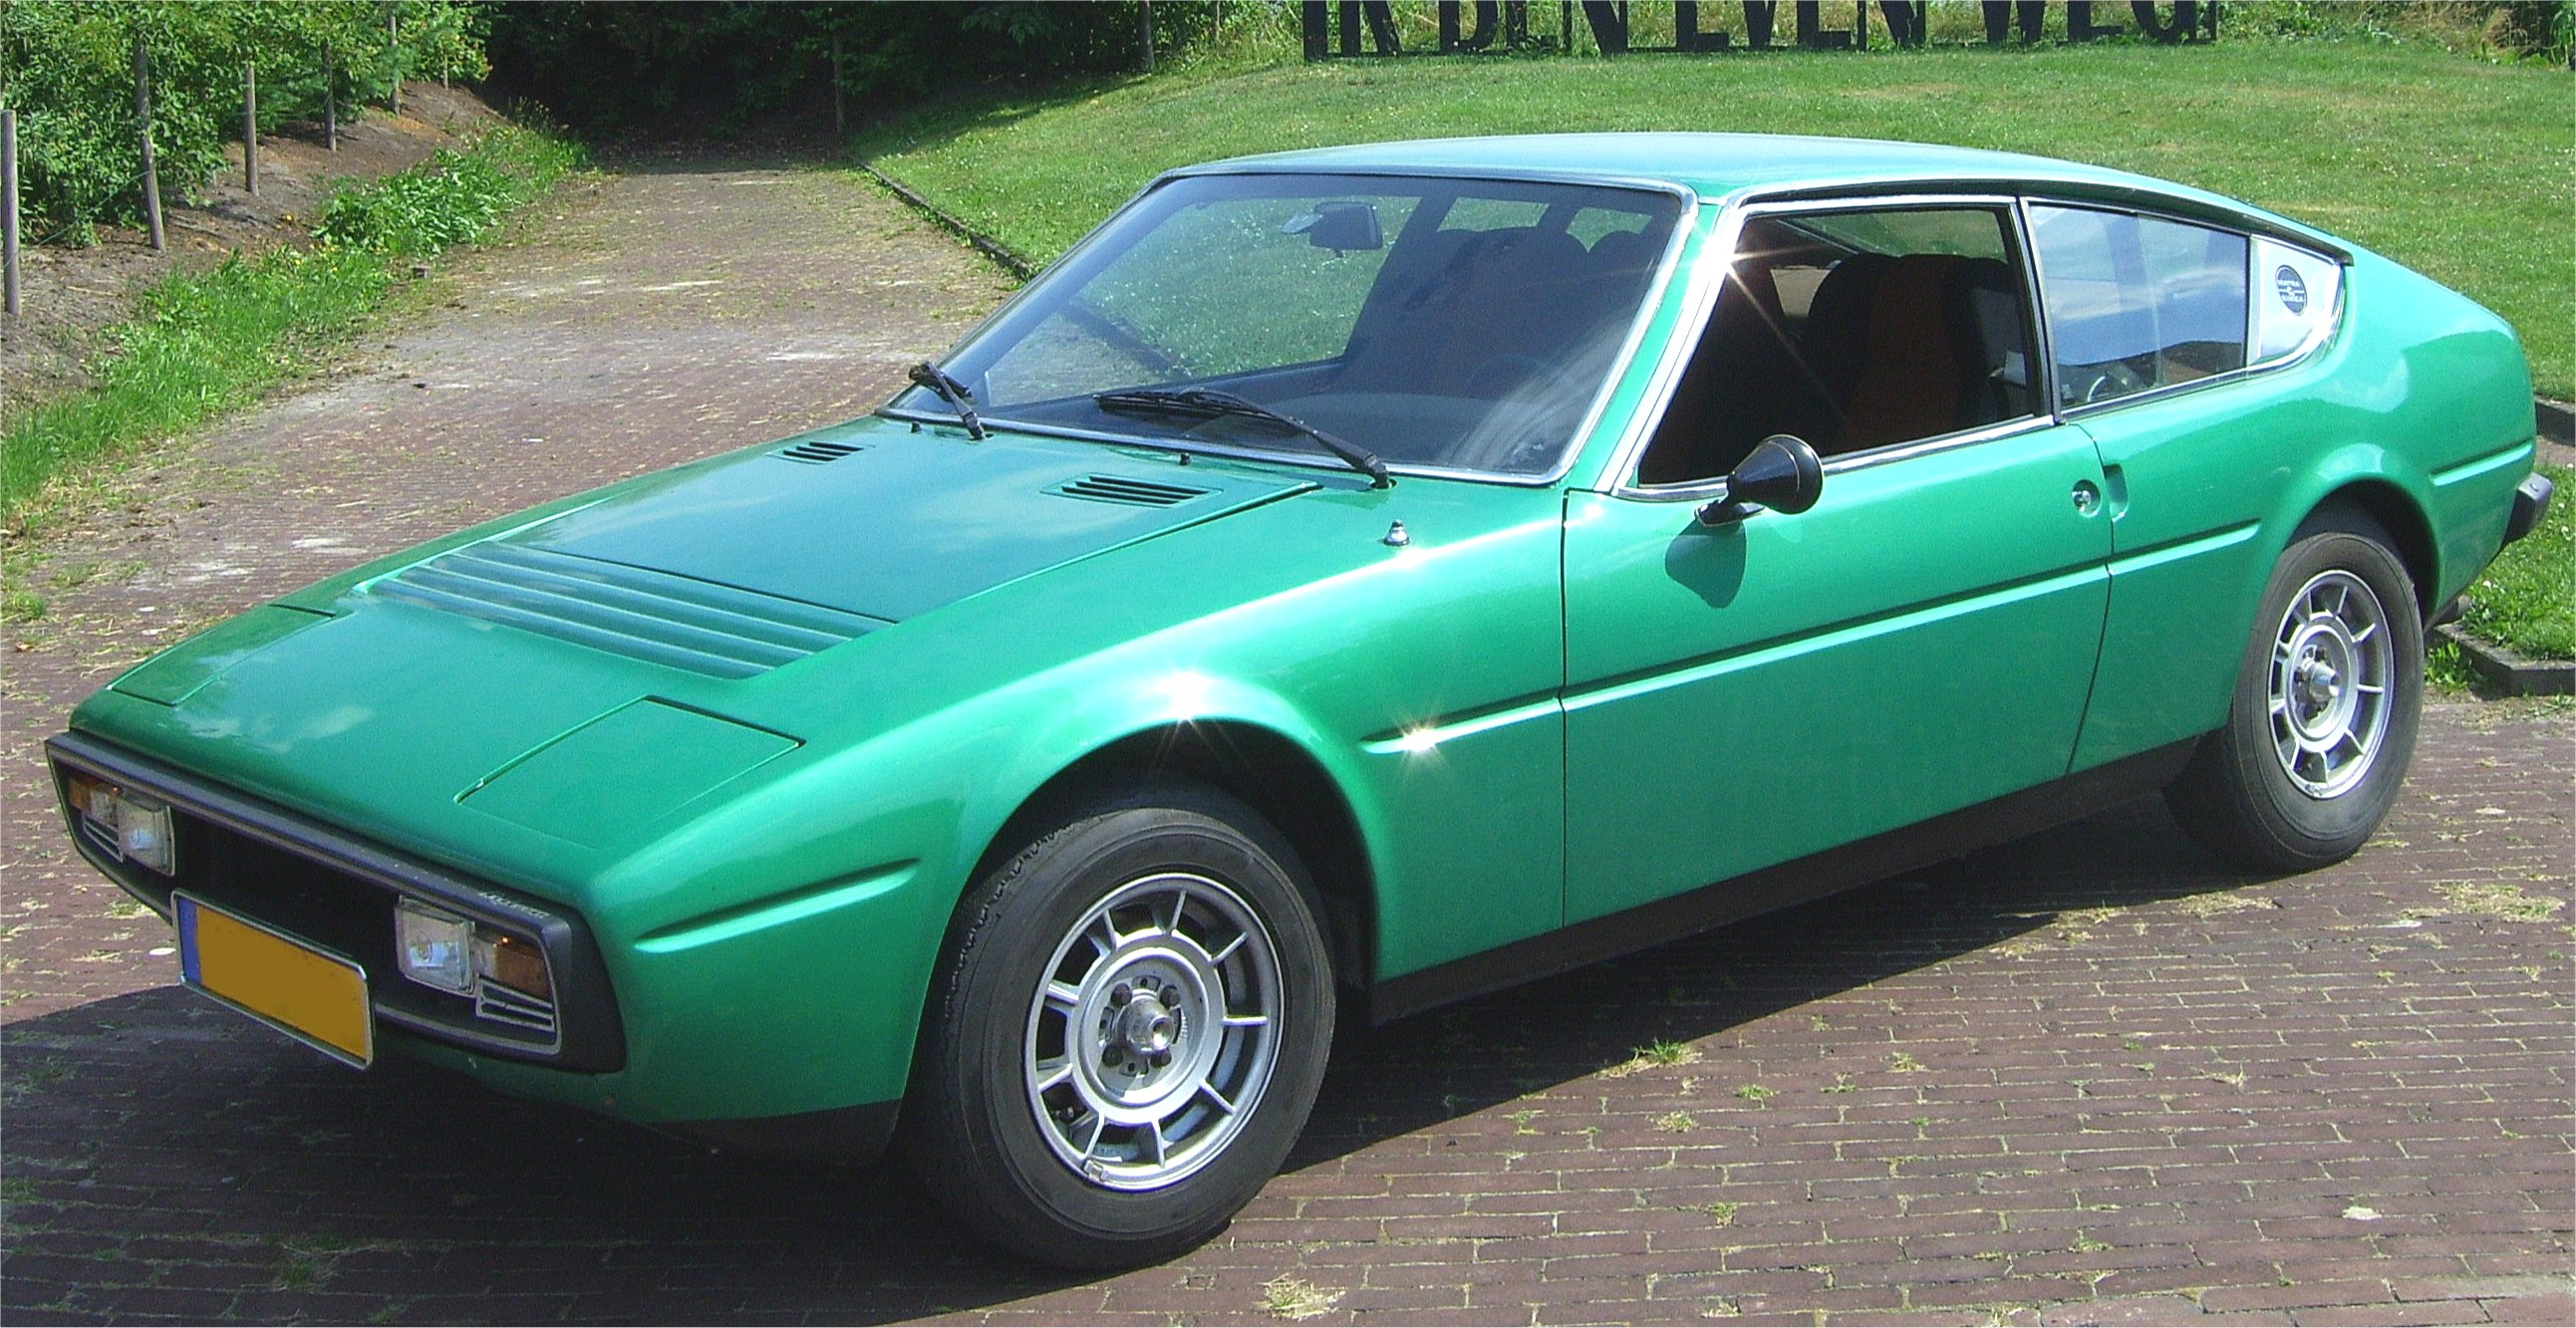 Matra-simca murena photo - 8